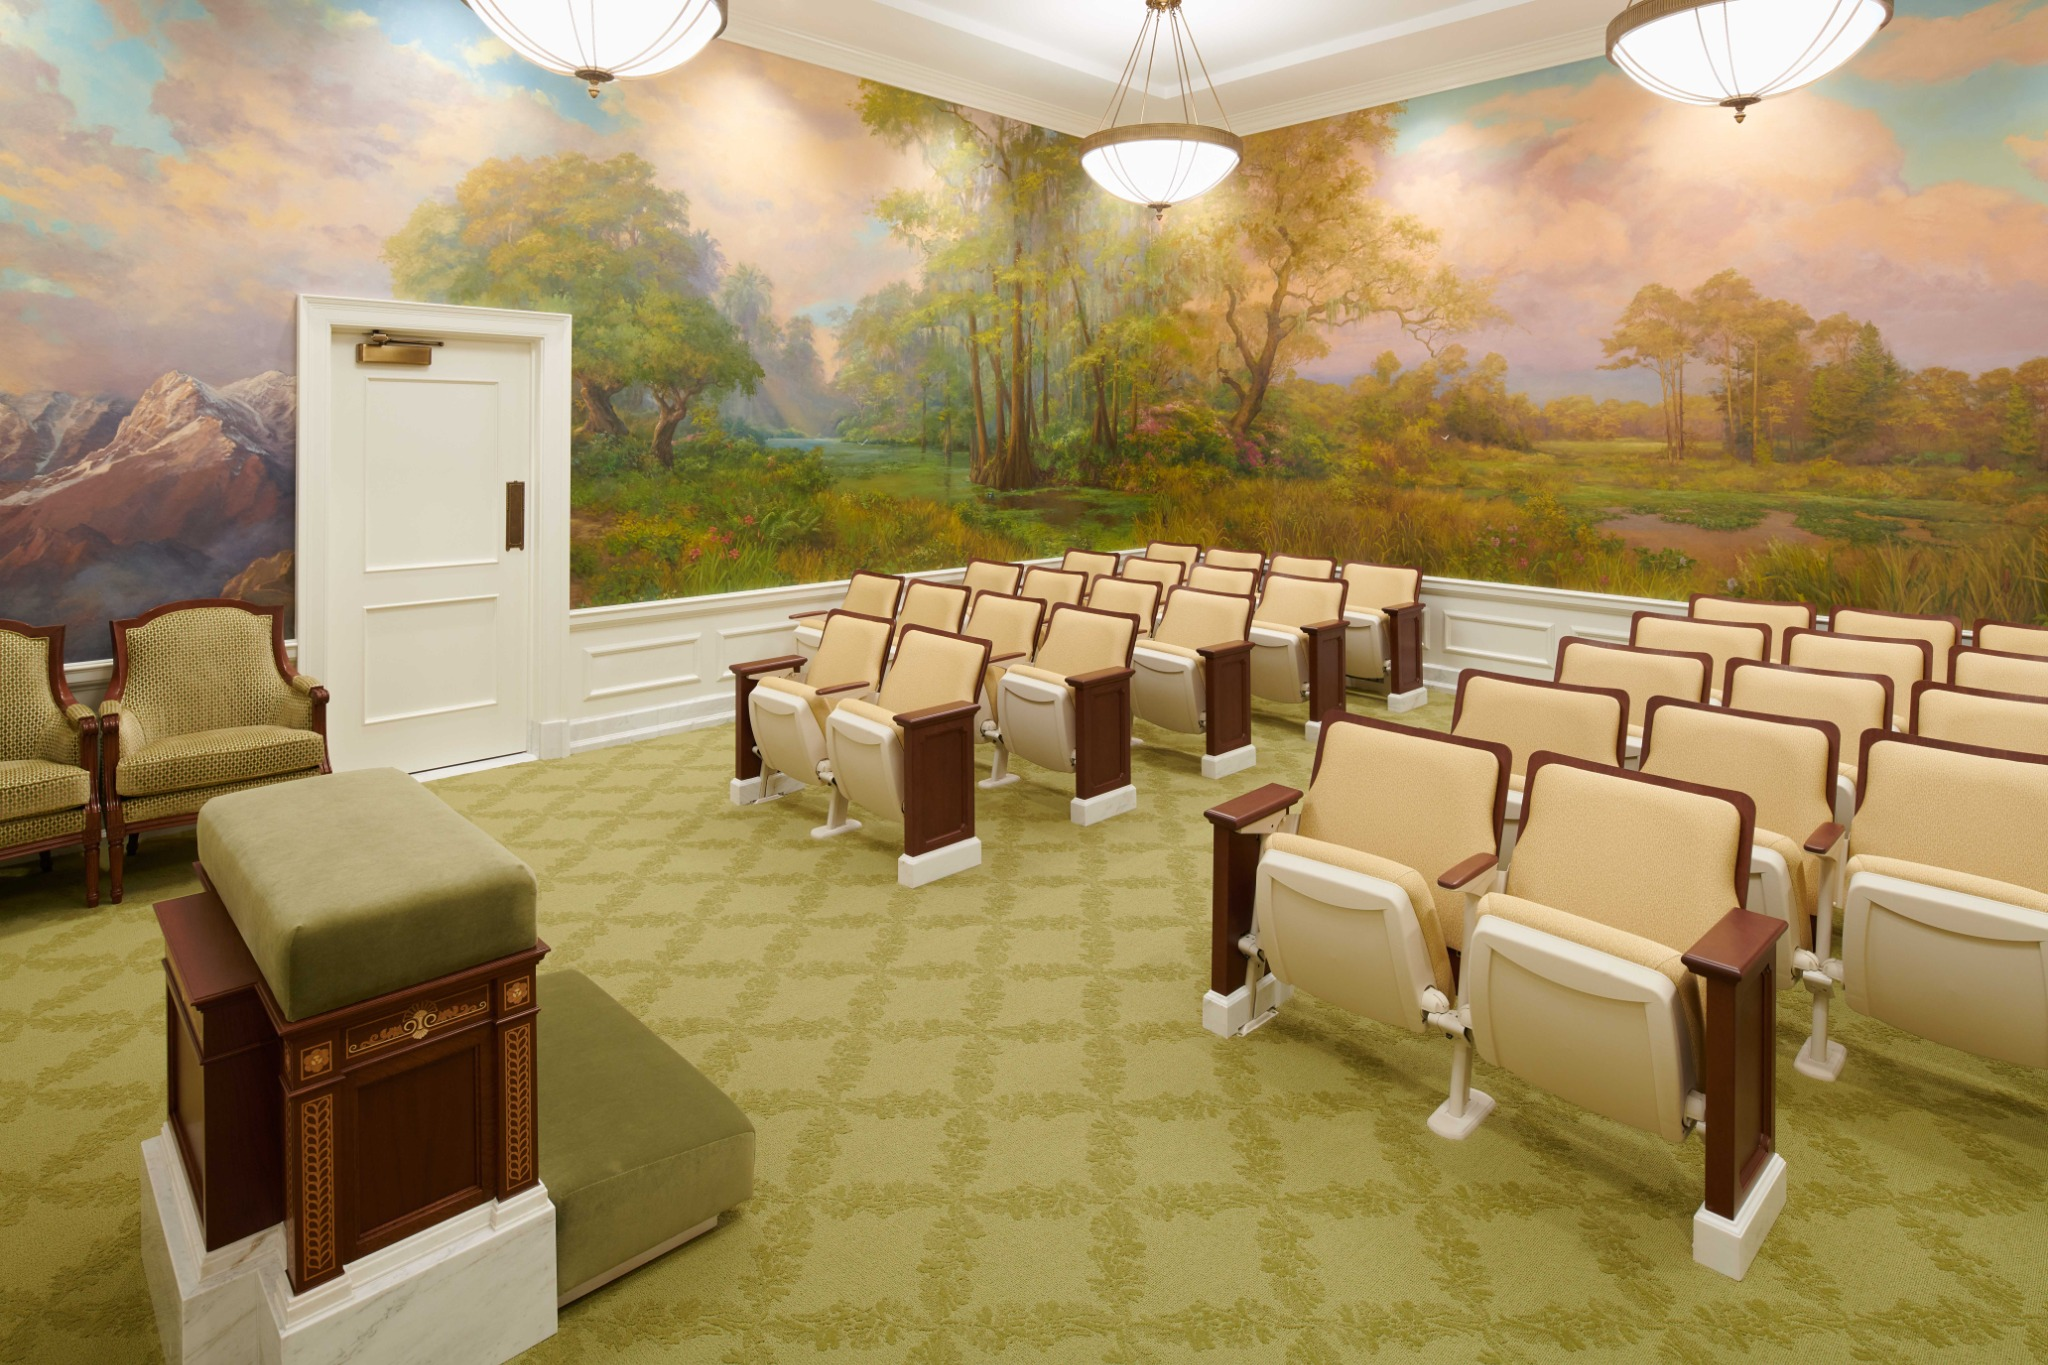 An instruction room in the Baton Rouge Louisiana Temple.